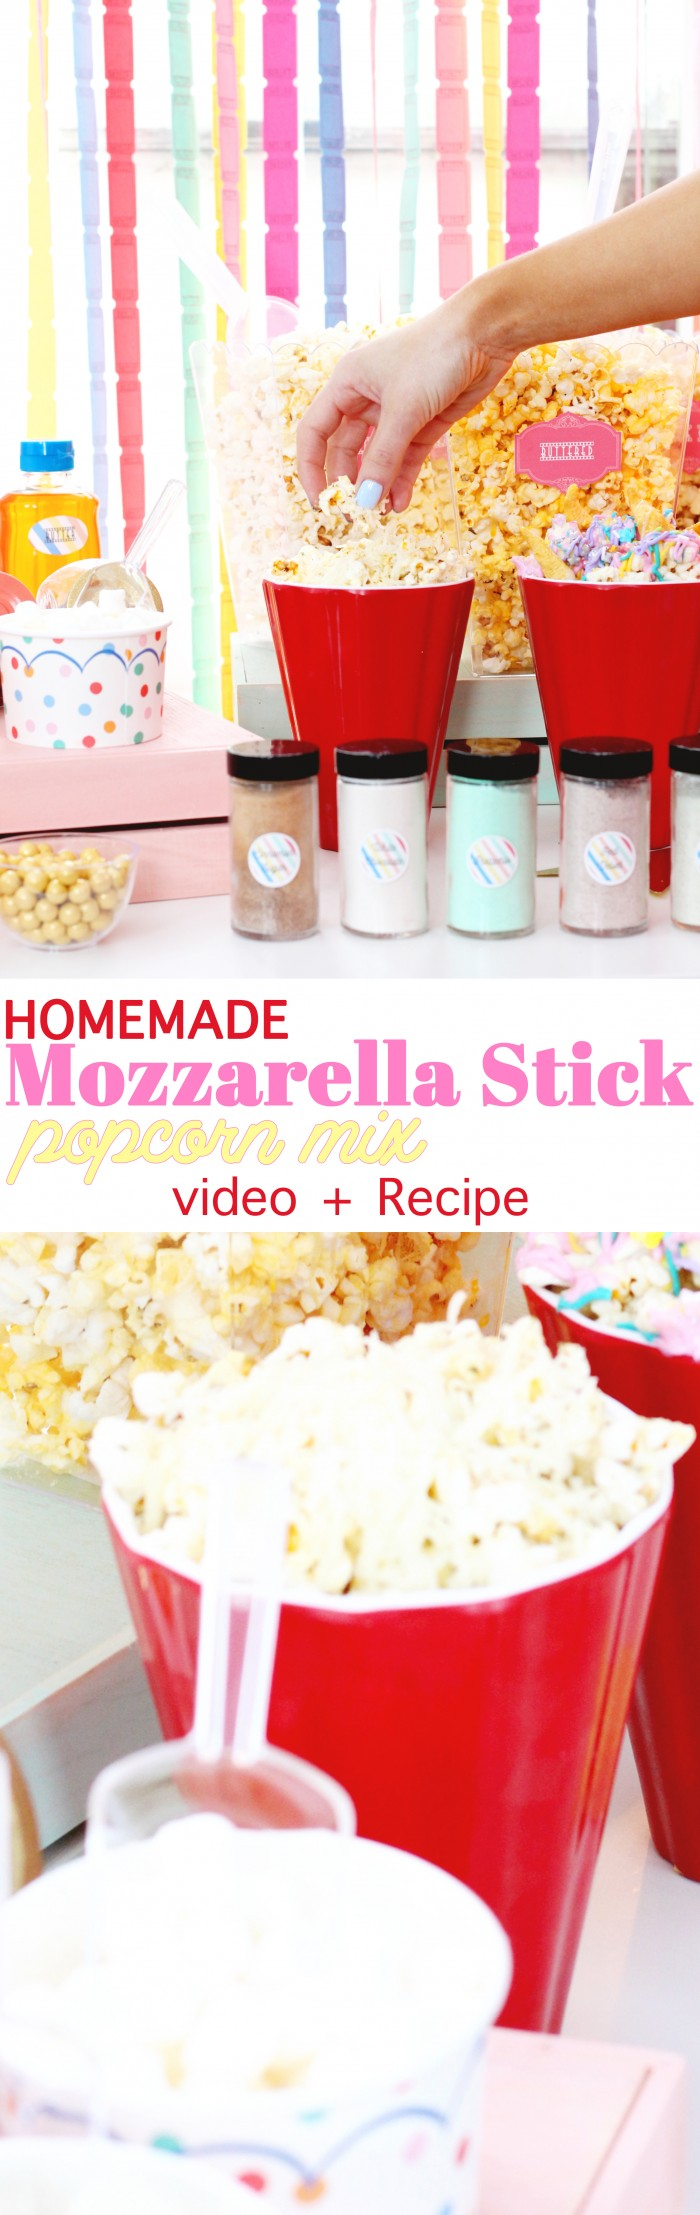 Yummy recipe for a mozzarella stick flavored popcorn mix!